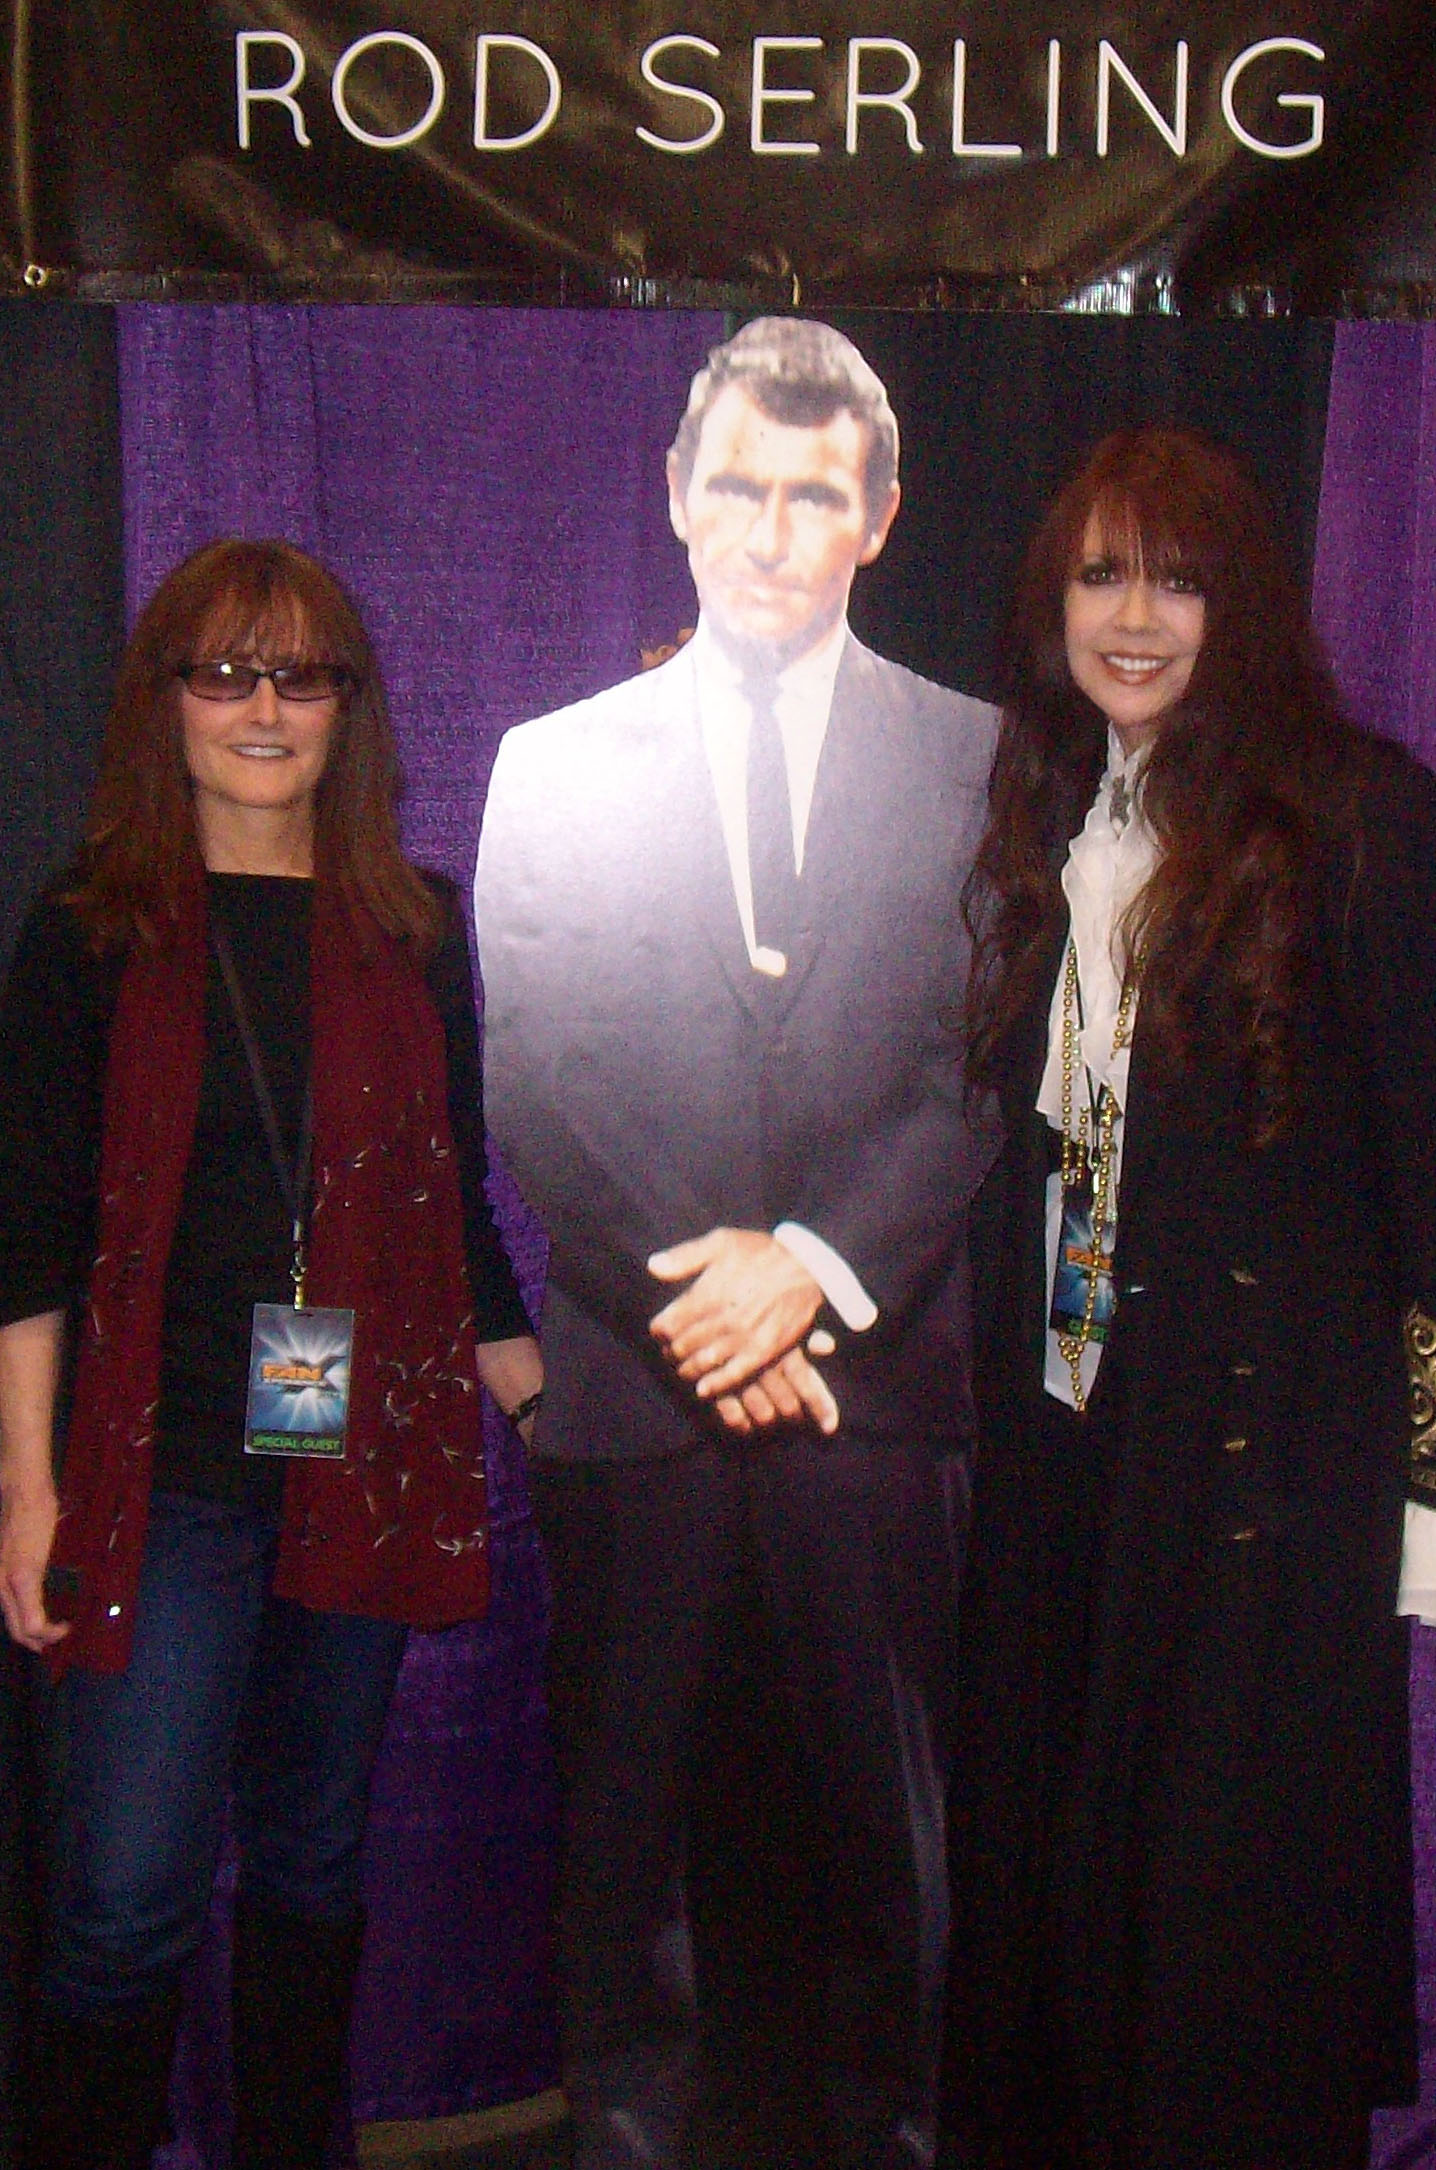 Twilight Zone - Rod Serling's daughter, Anne Serling and Deborah Reed - Special guests at Comic Con